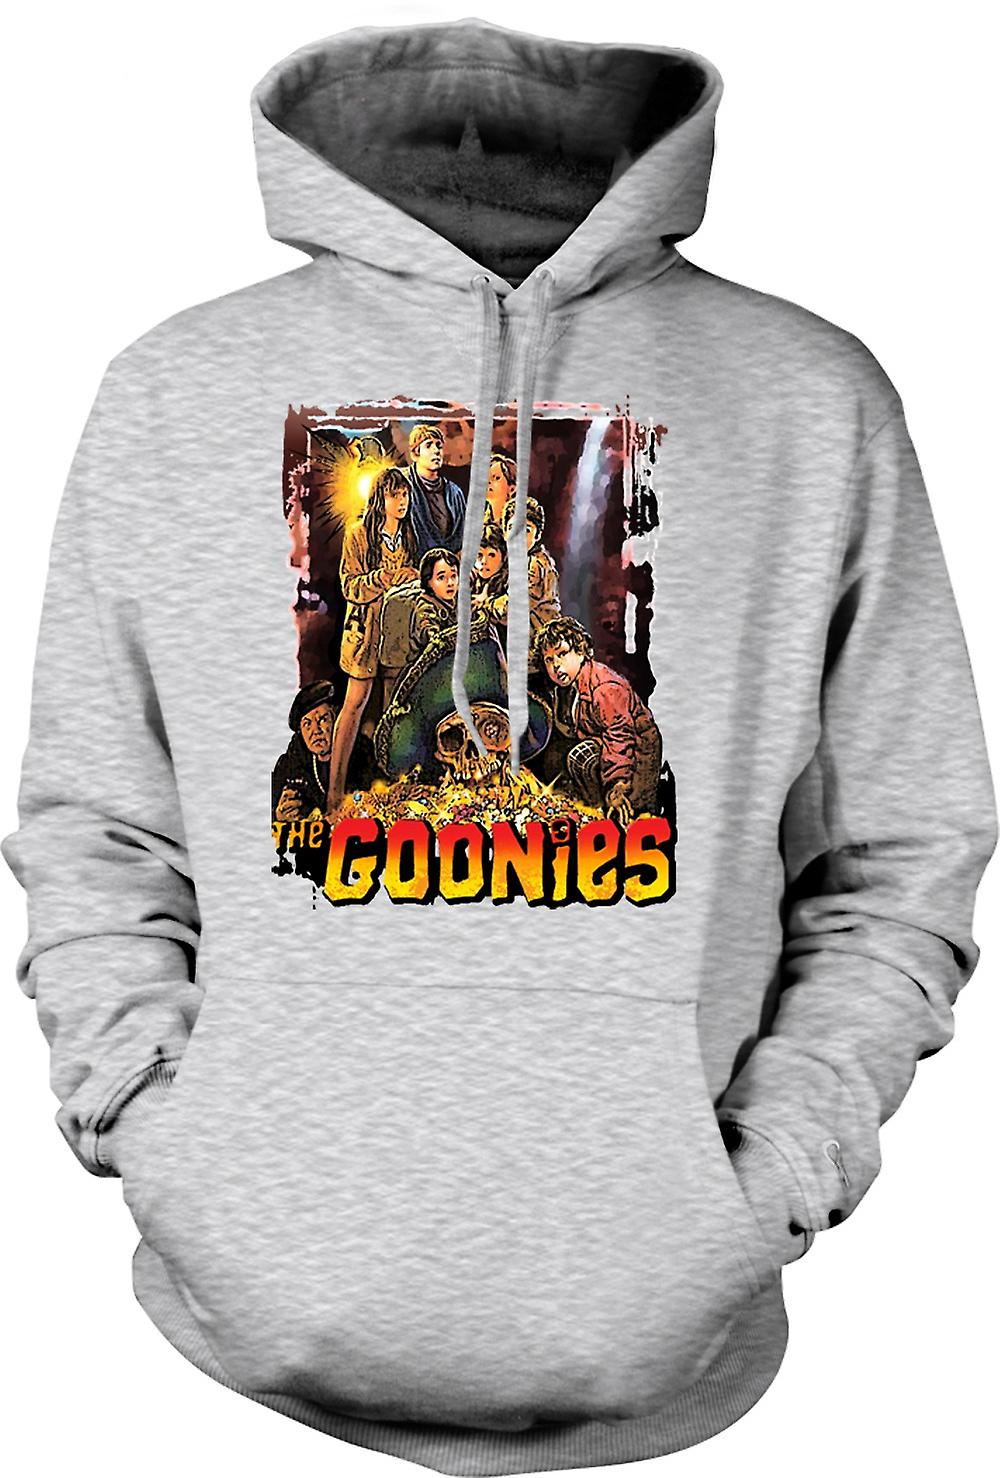 Mens Hoodie - The Goonies Treasure - Movie